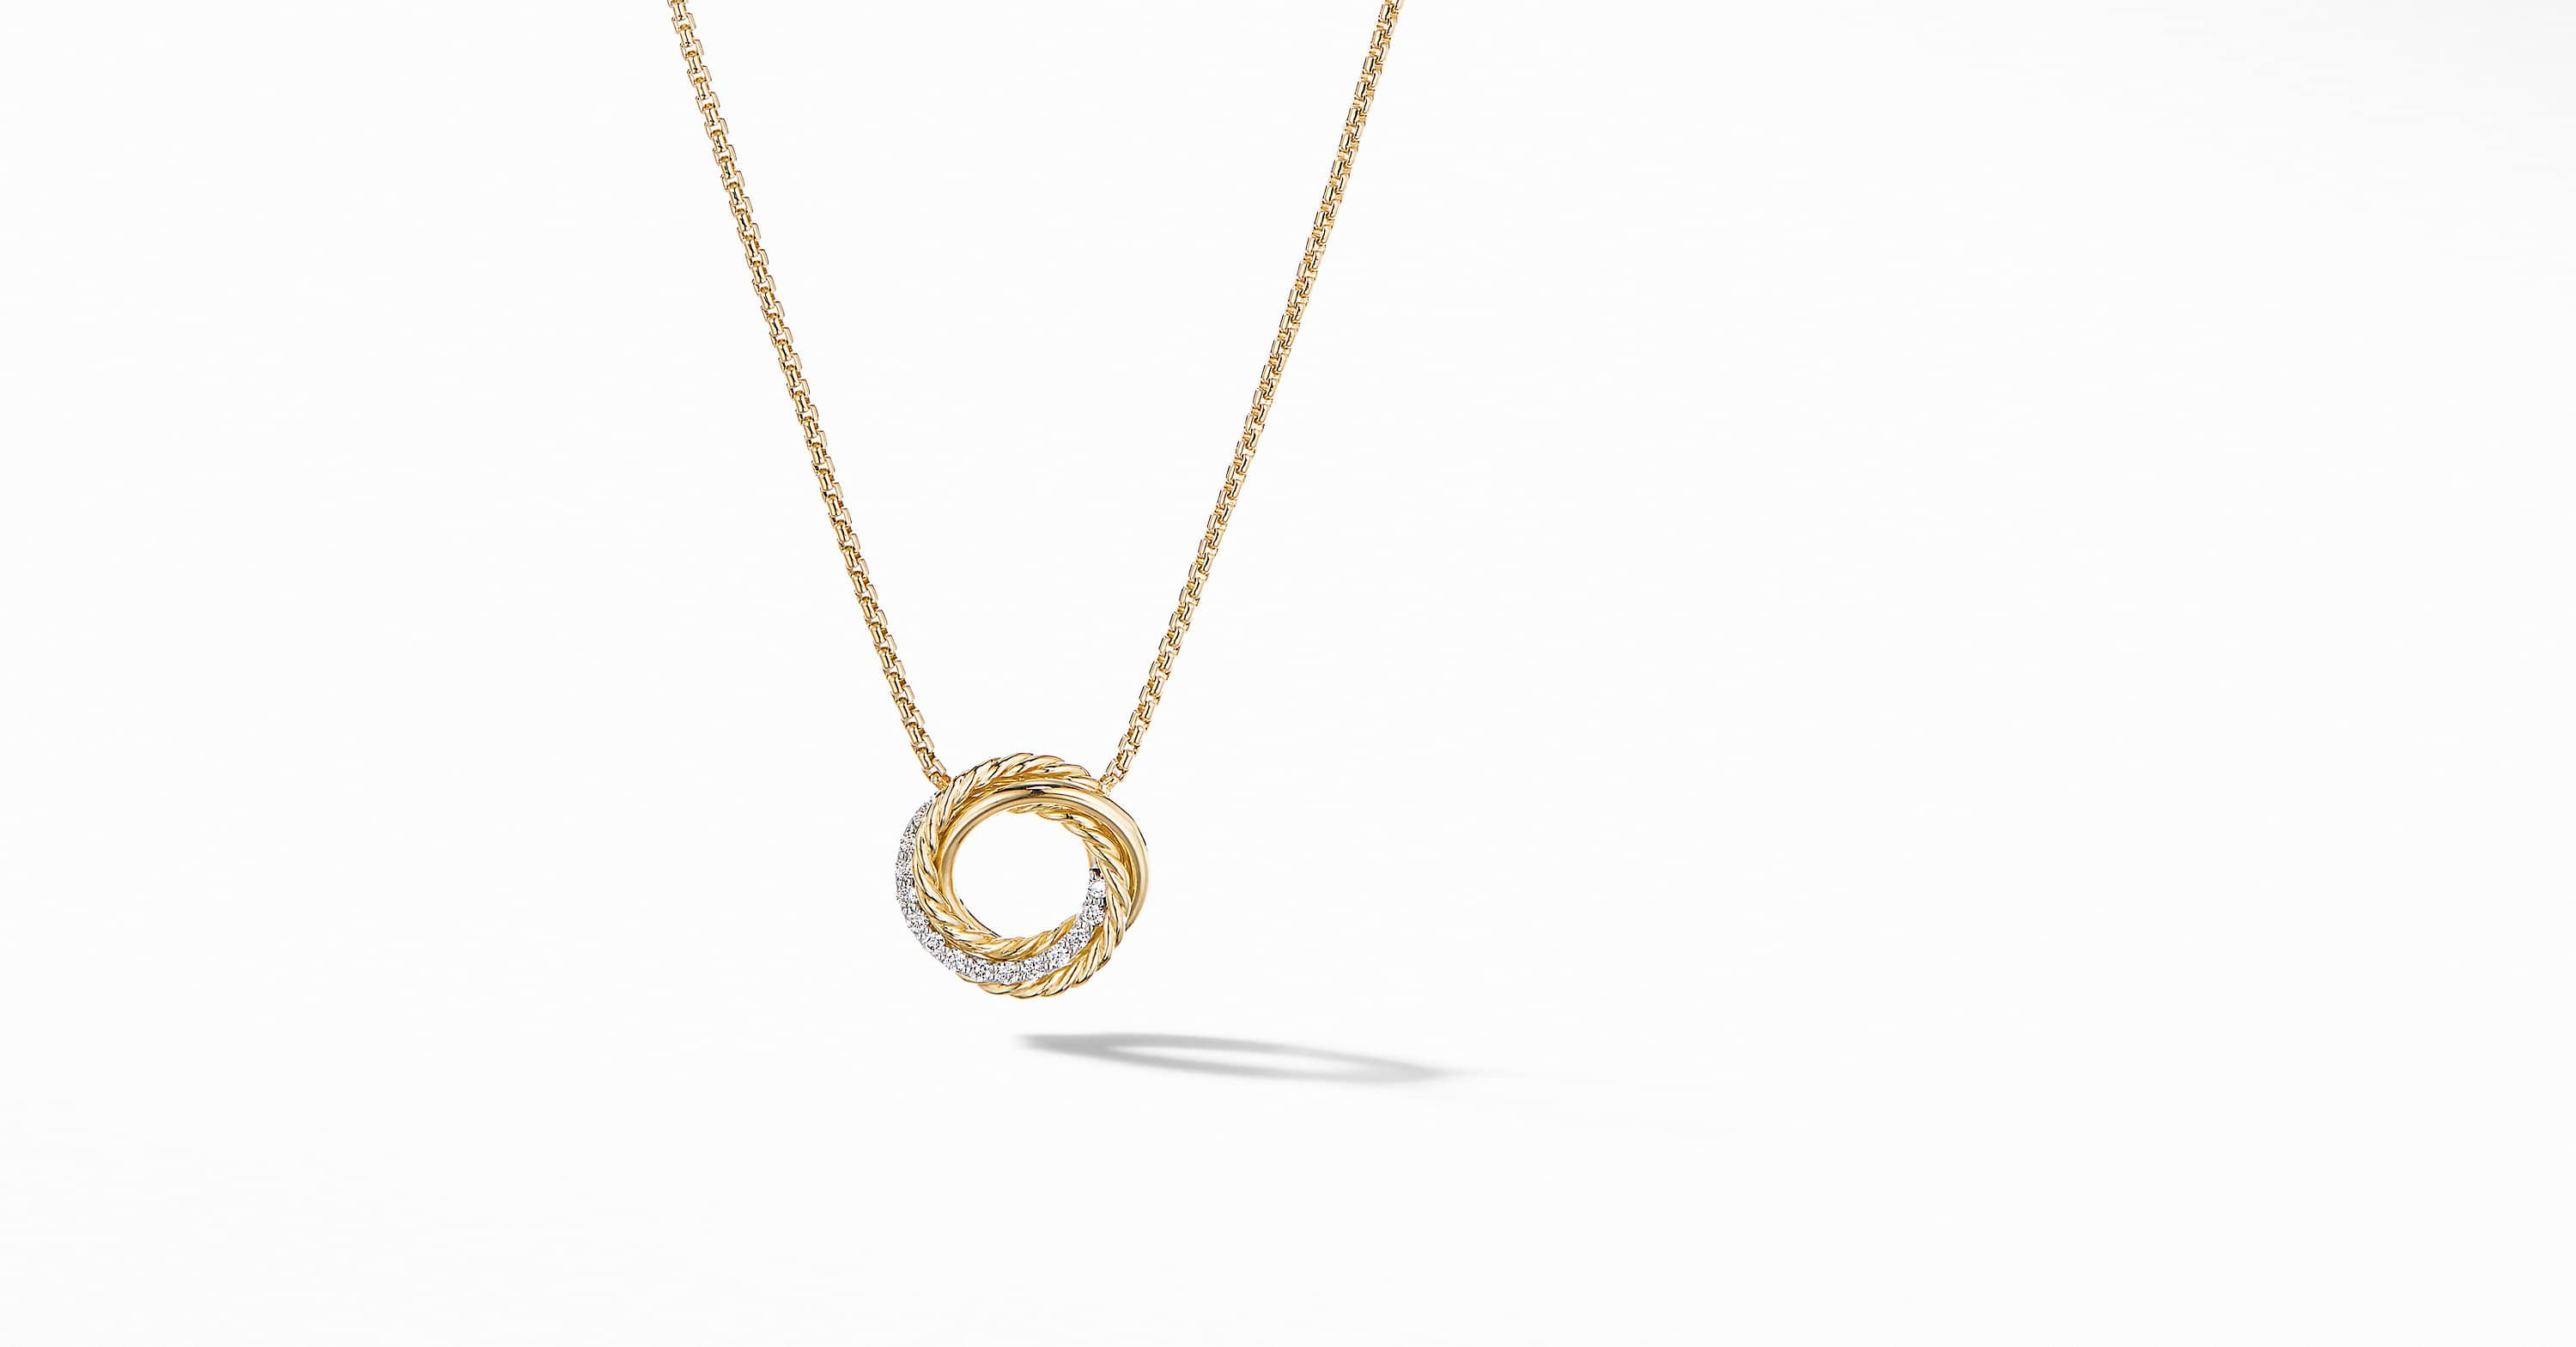 The Crossover Collection Mini Pendant Necklace in 18K Yellow Gold with Diamonds